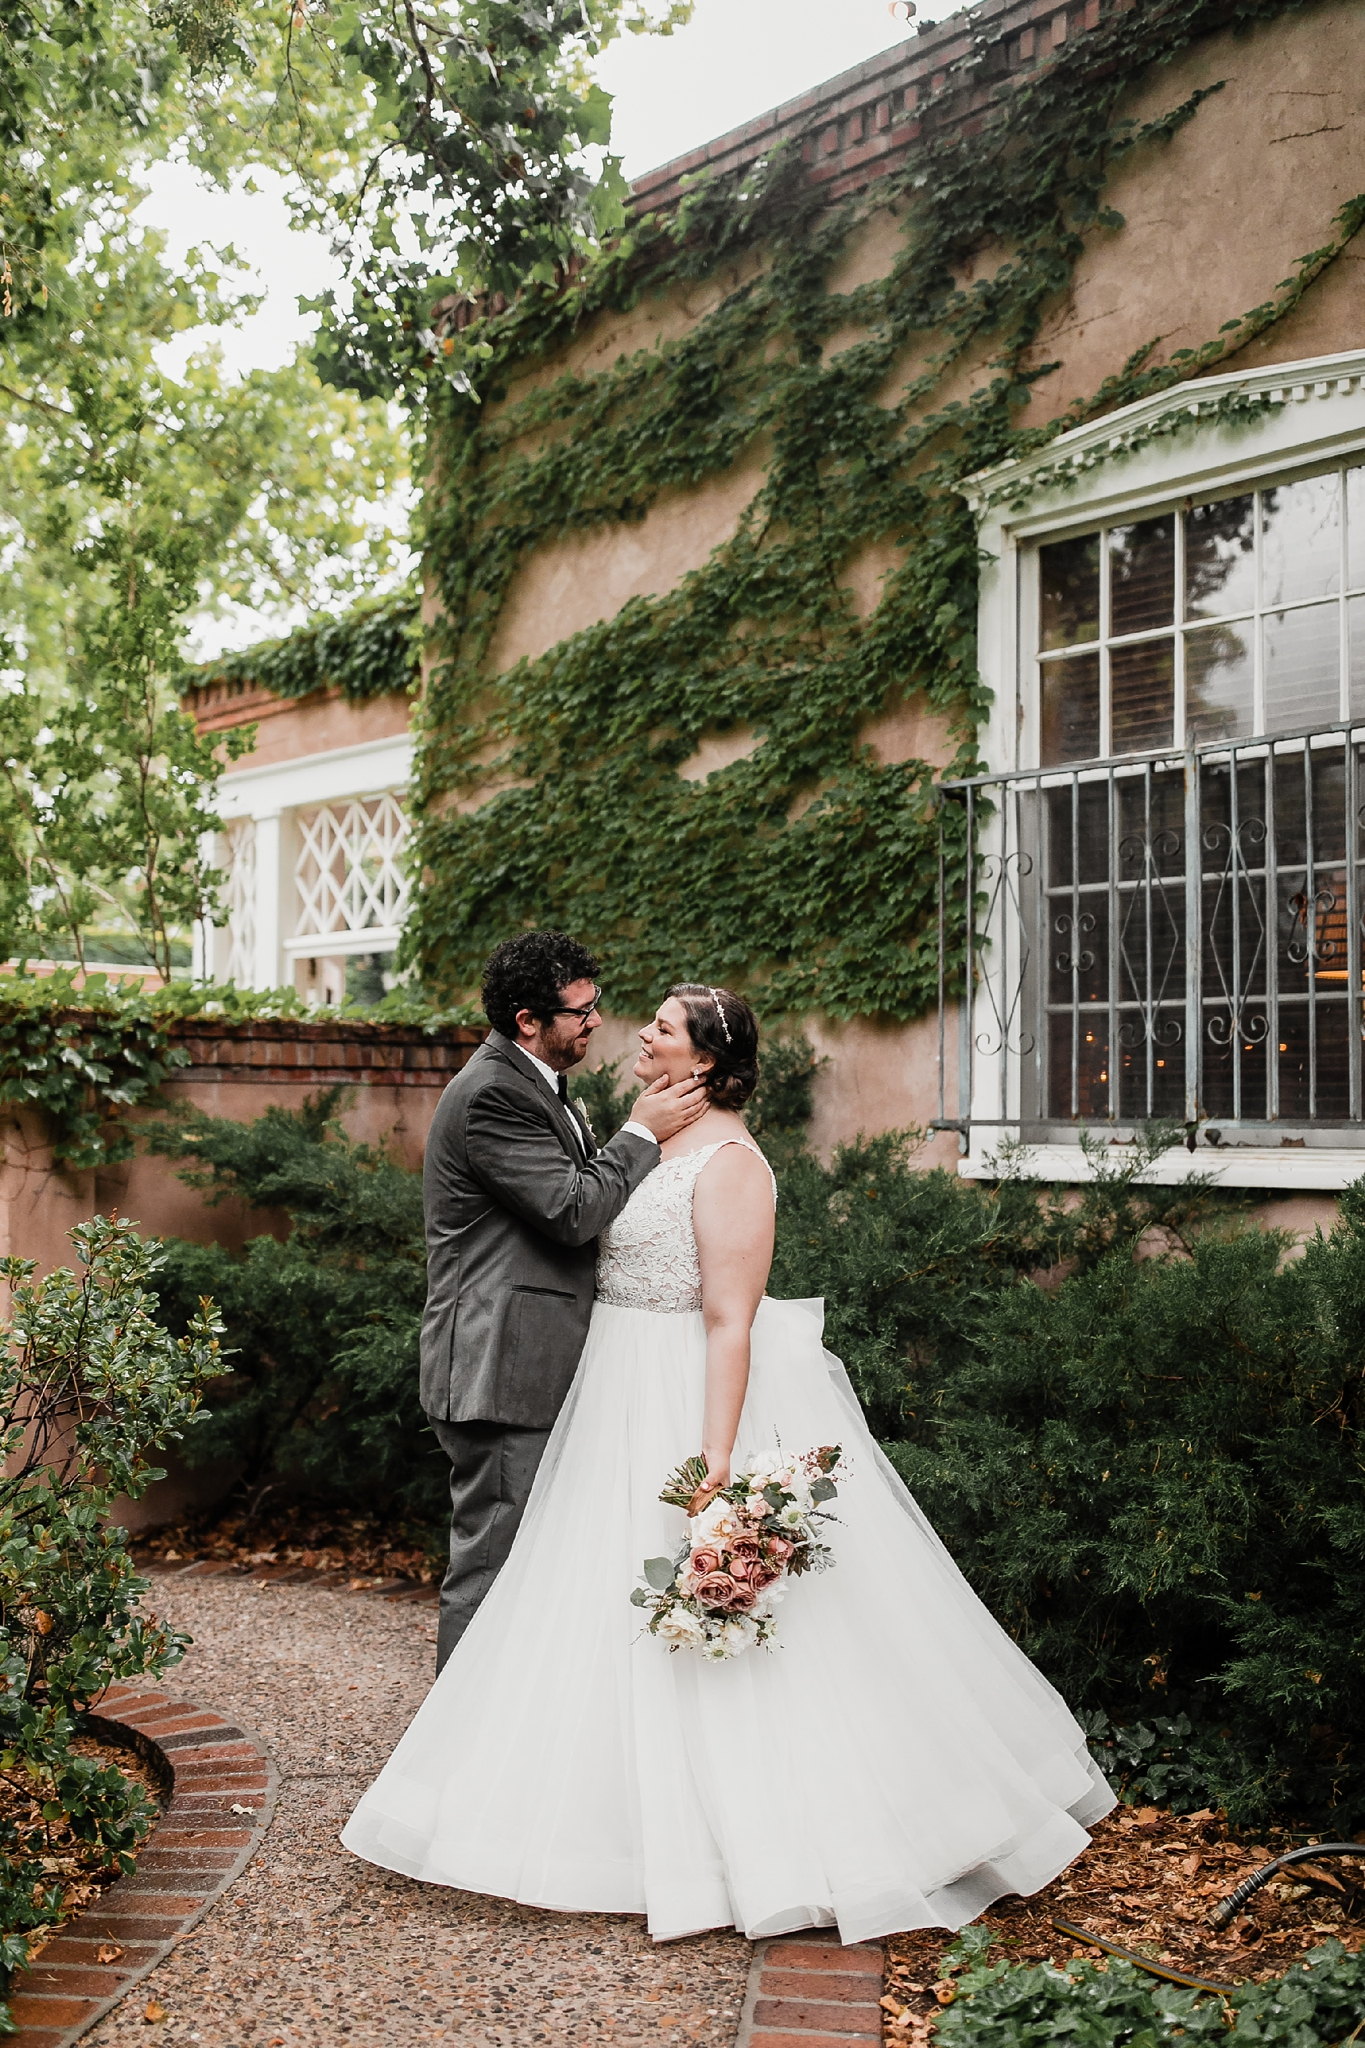 Alicia+lucia+photography+-+albuquerque+wedding+photographer+-+santa+fe+wedding+photography+-+new+mexico+wedding+photographer+-+new+mexico+wedding+-+summer+wedding+-+los+poblanos+wedding+-+albuquerque+wedding_0077.jpg